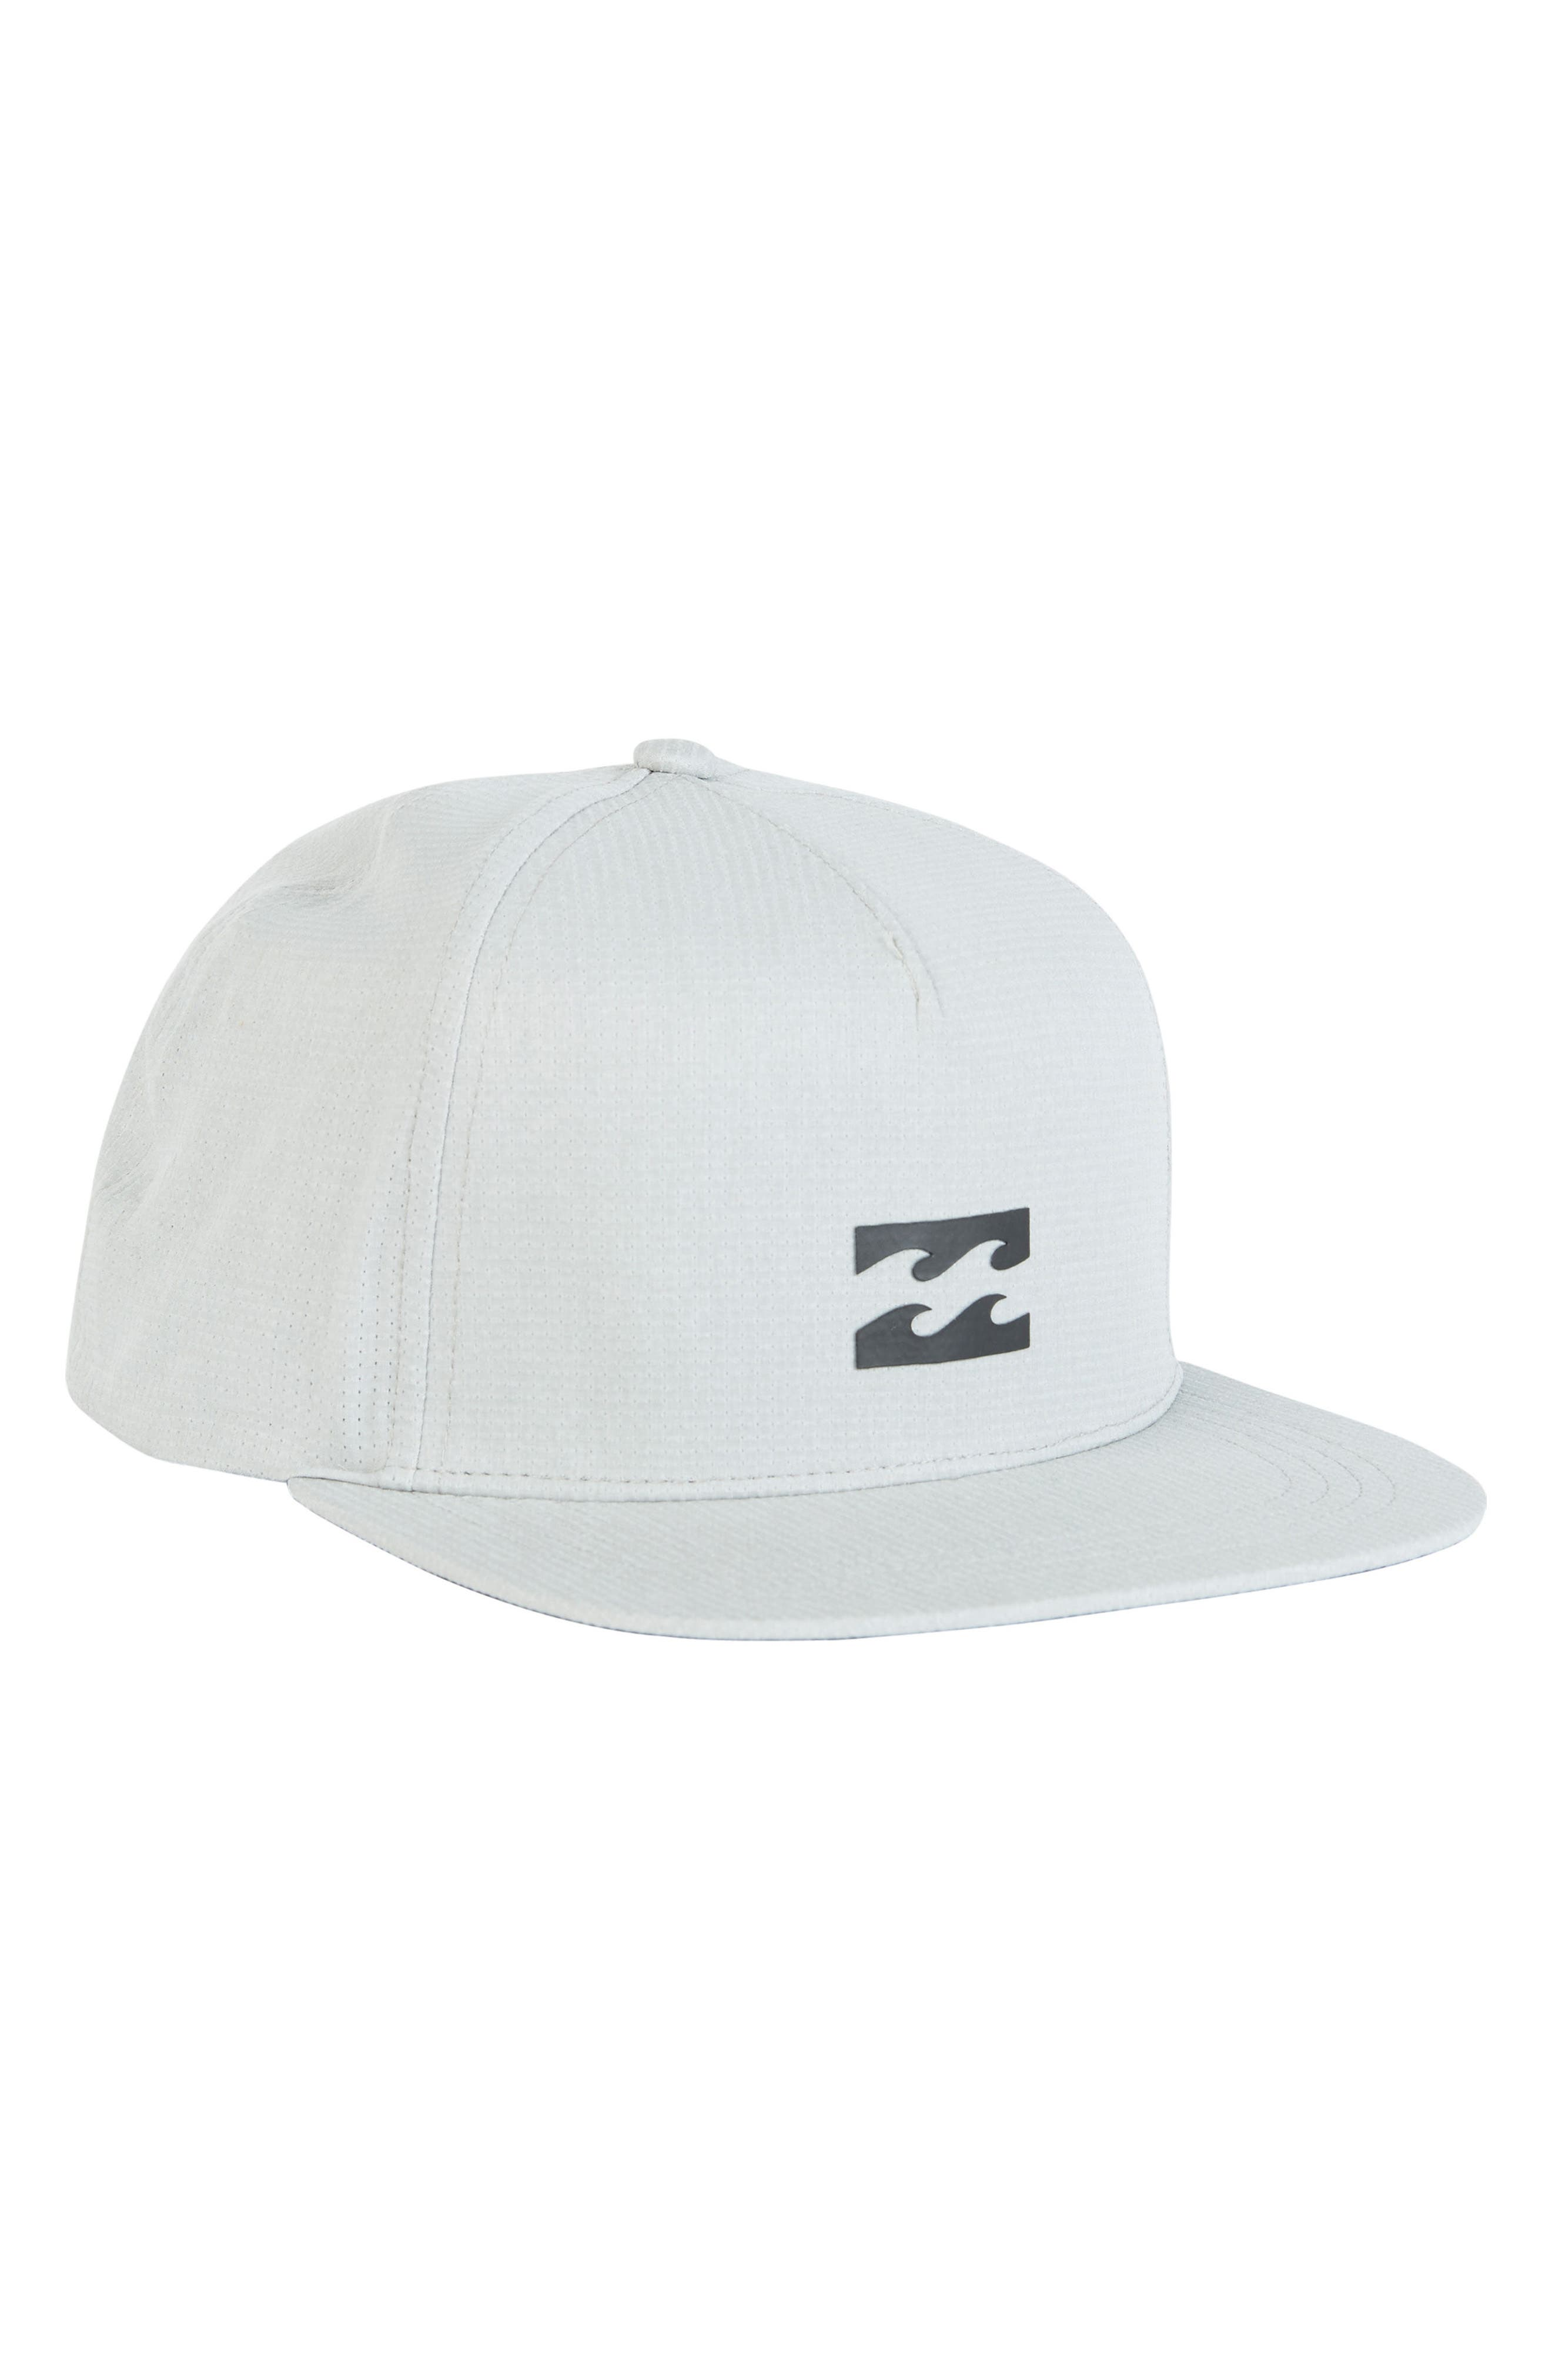 Airlite Baseball Cap,                             Main thumbnail 2, color,